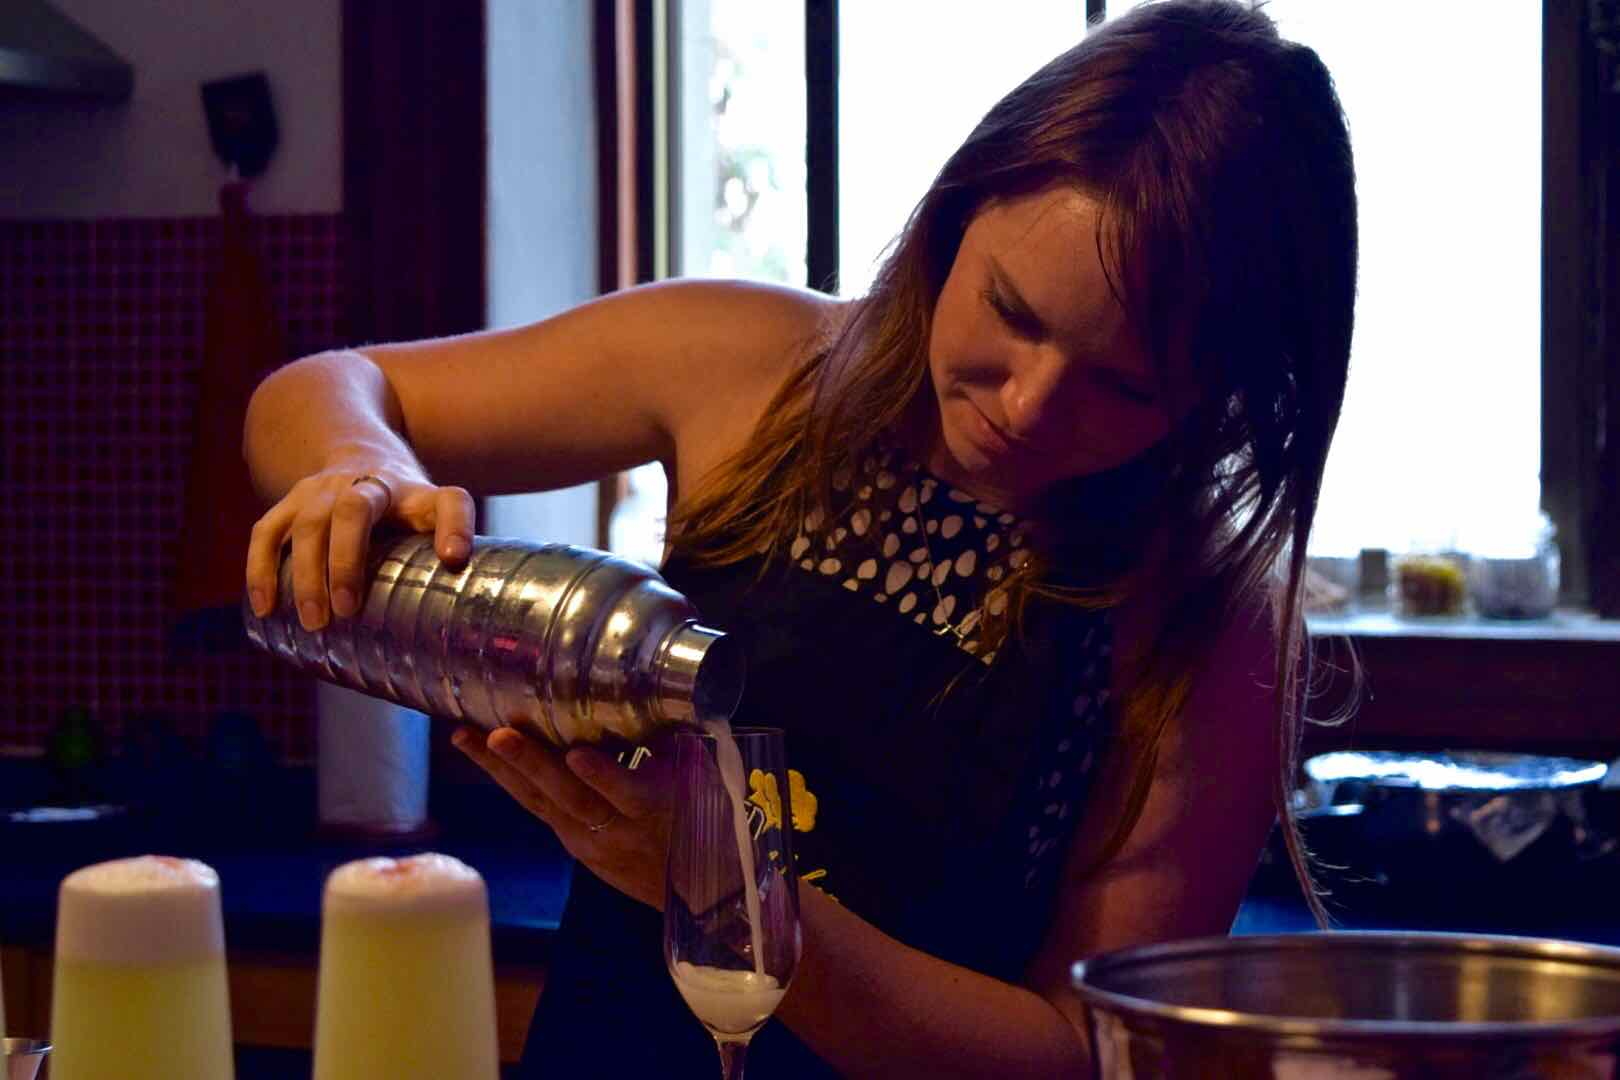 Making Pisco Sours in Santiago, Chile